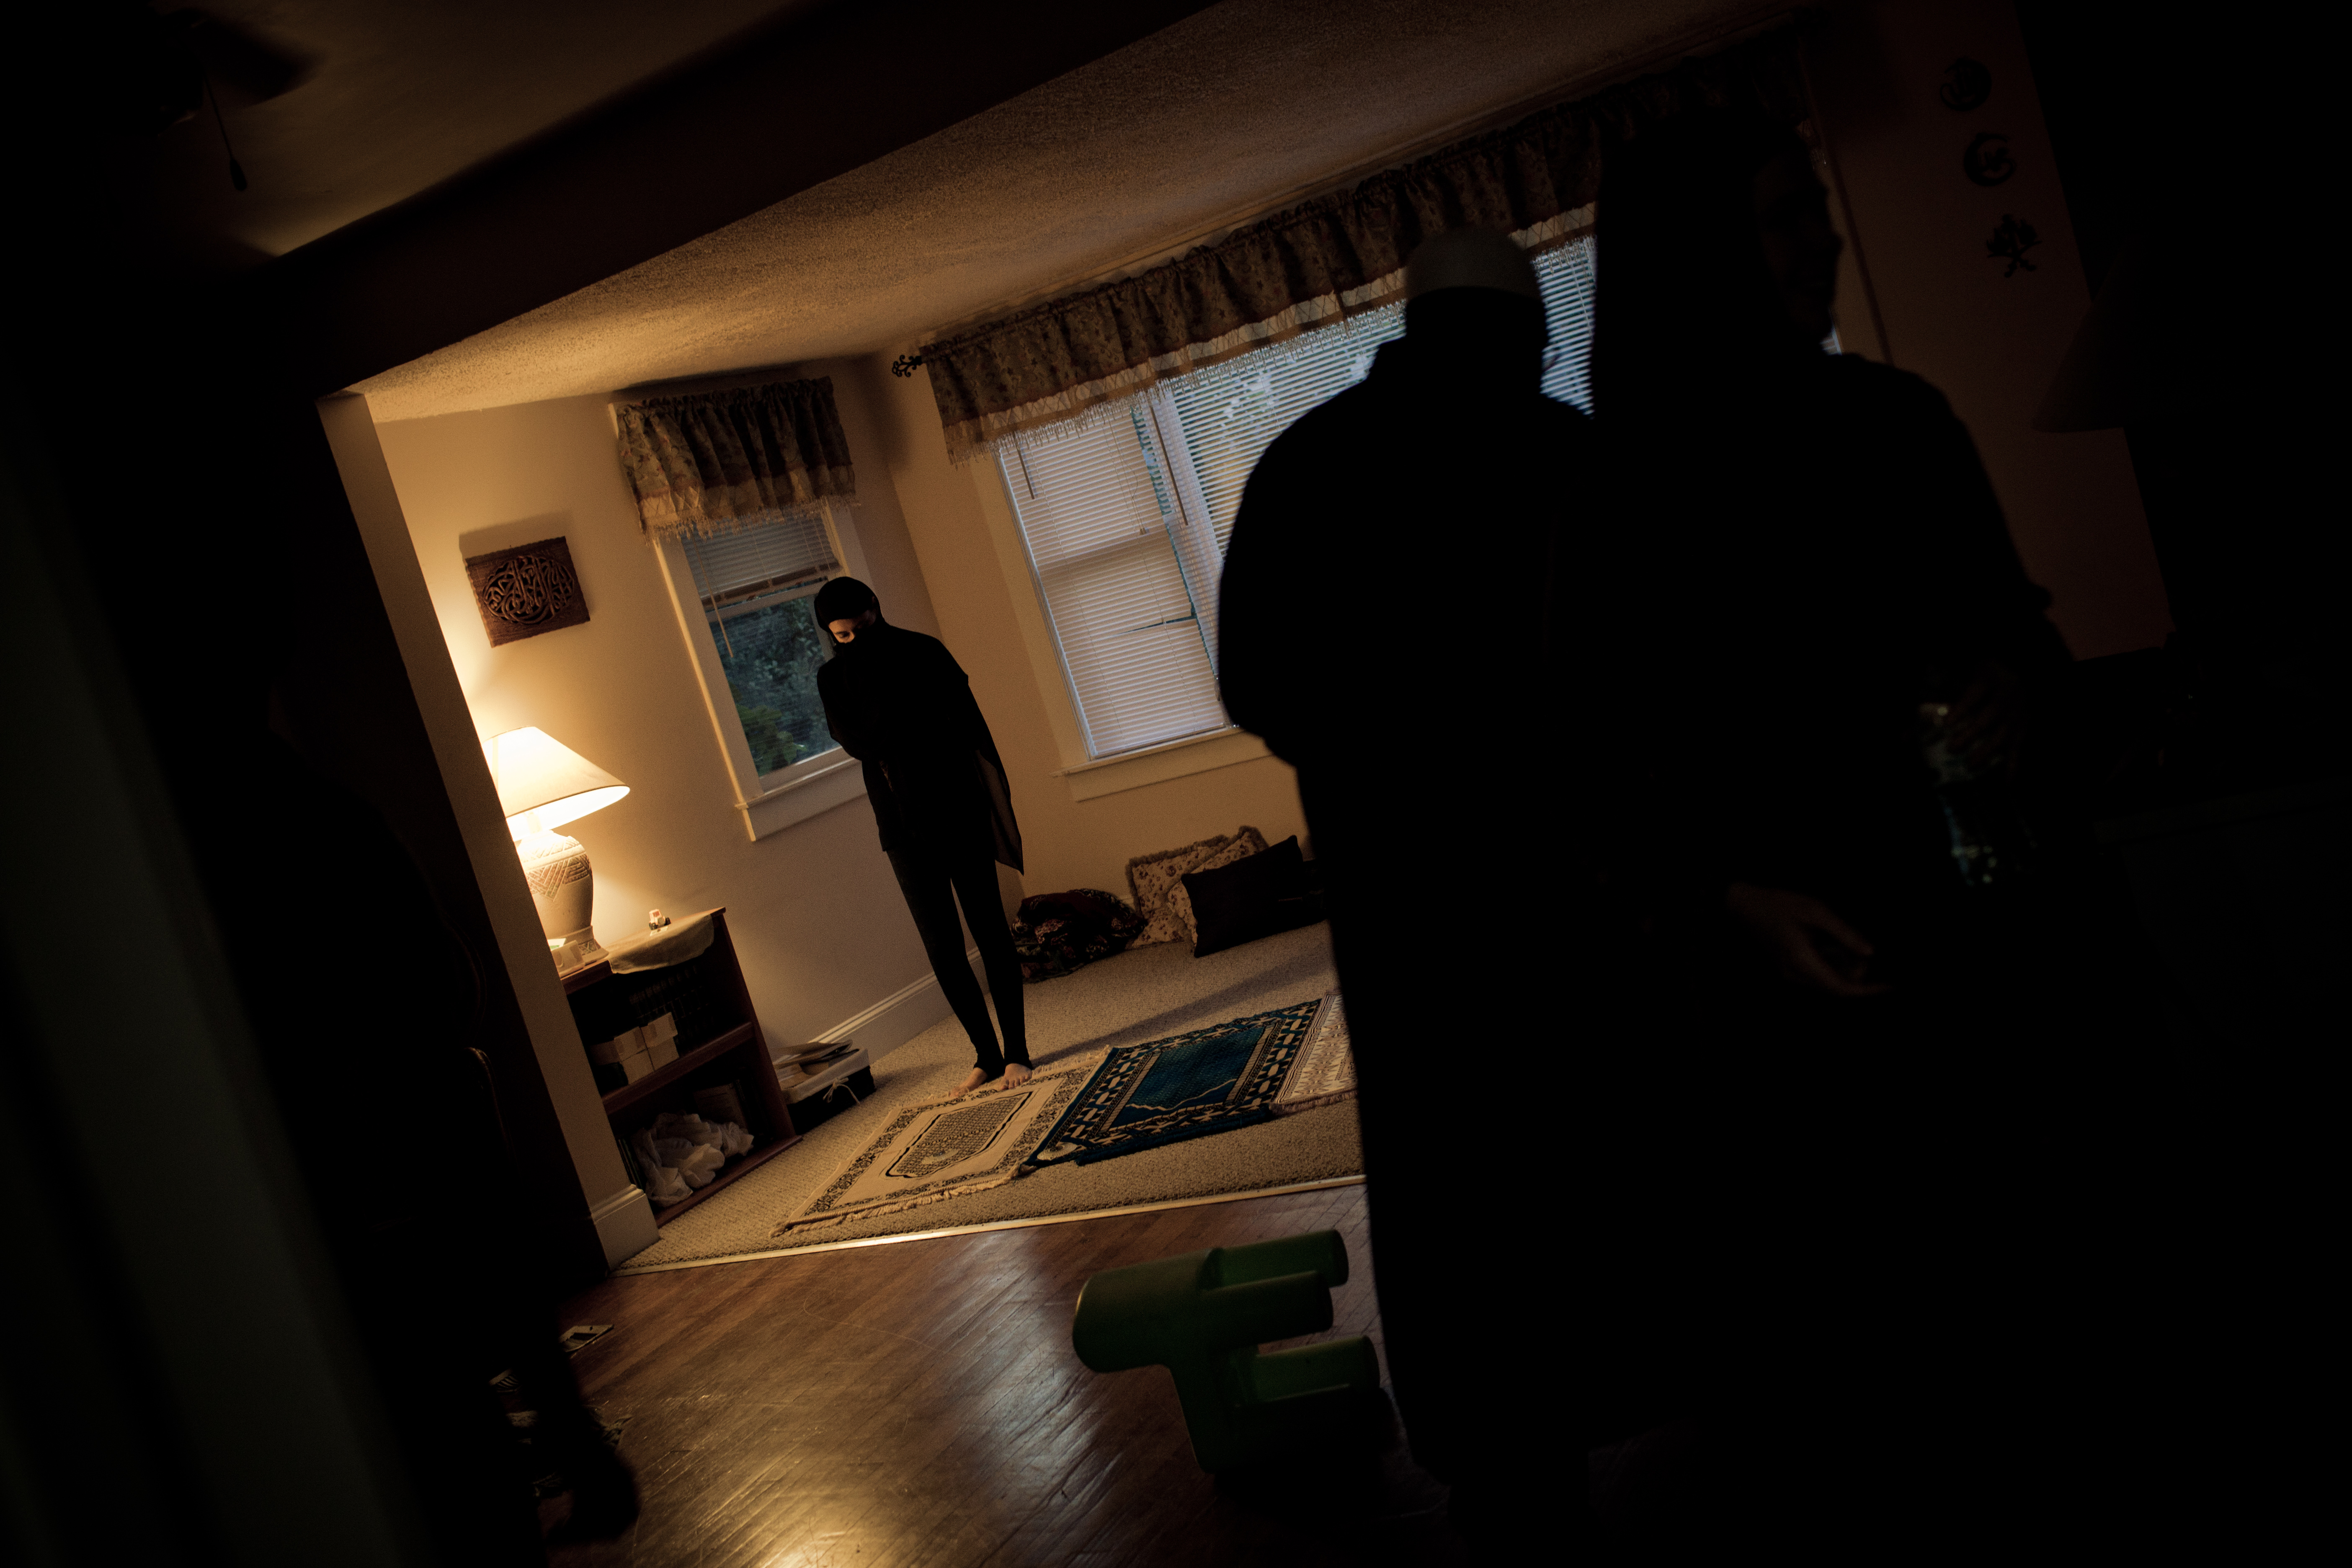 A woman prays inside a Muslim women's shelter in Baltimore, Maryland. Image: 30 Mosques in 30 Days